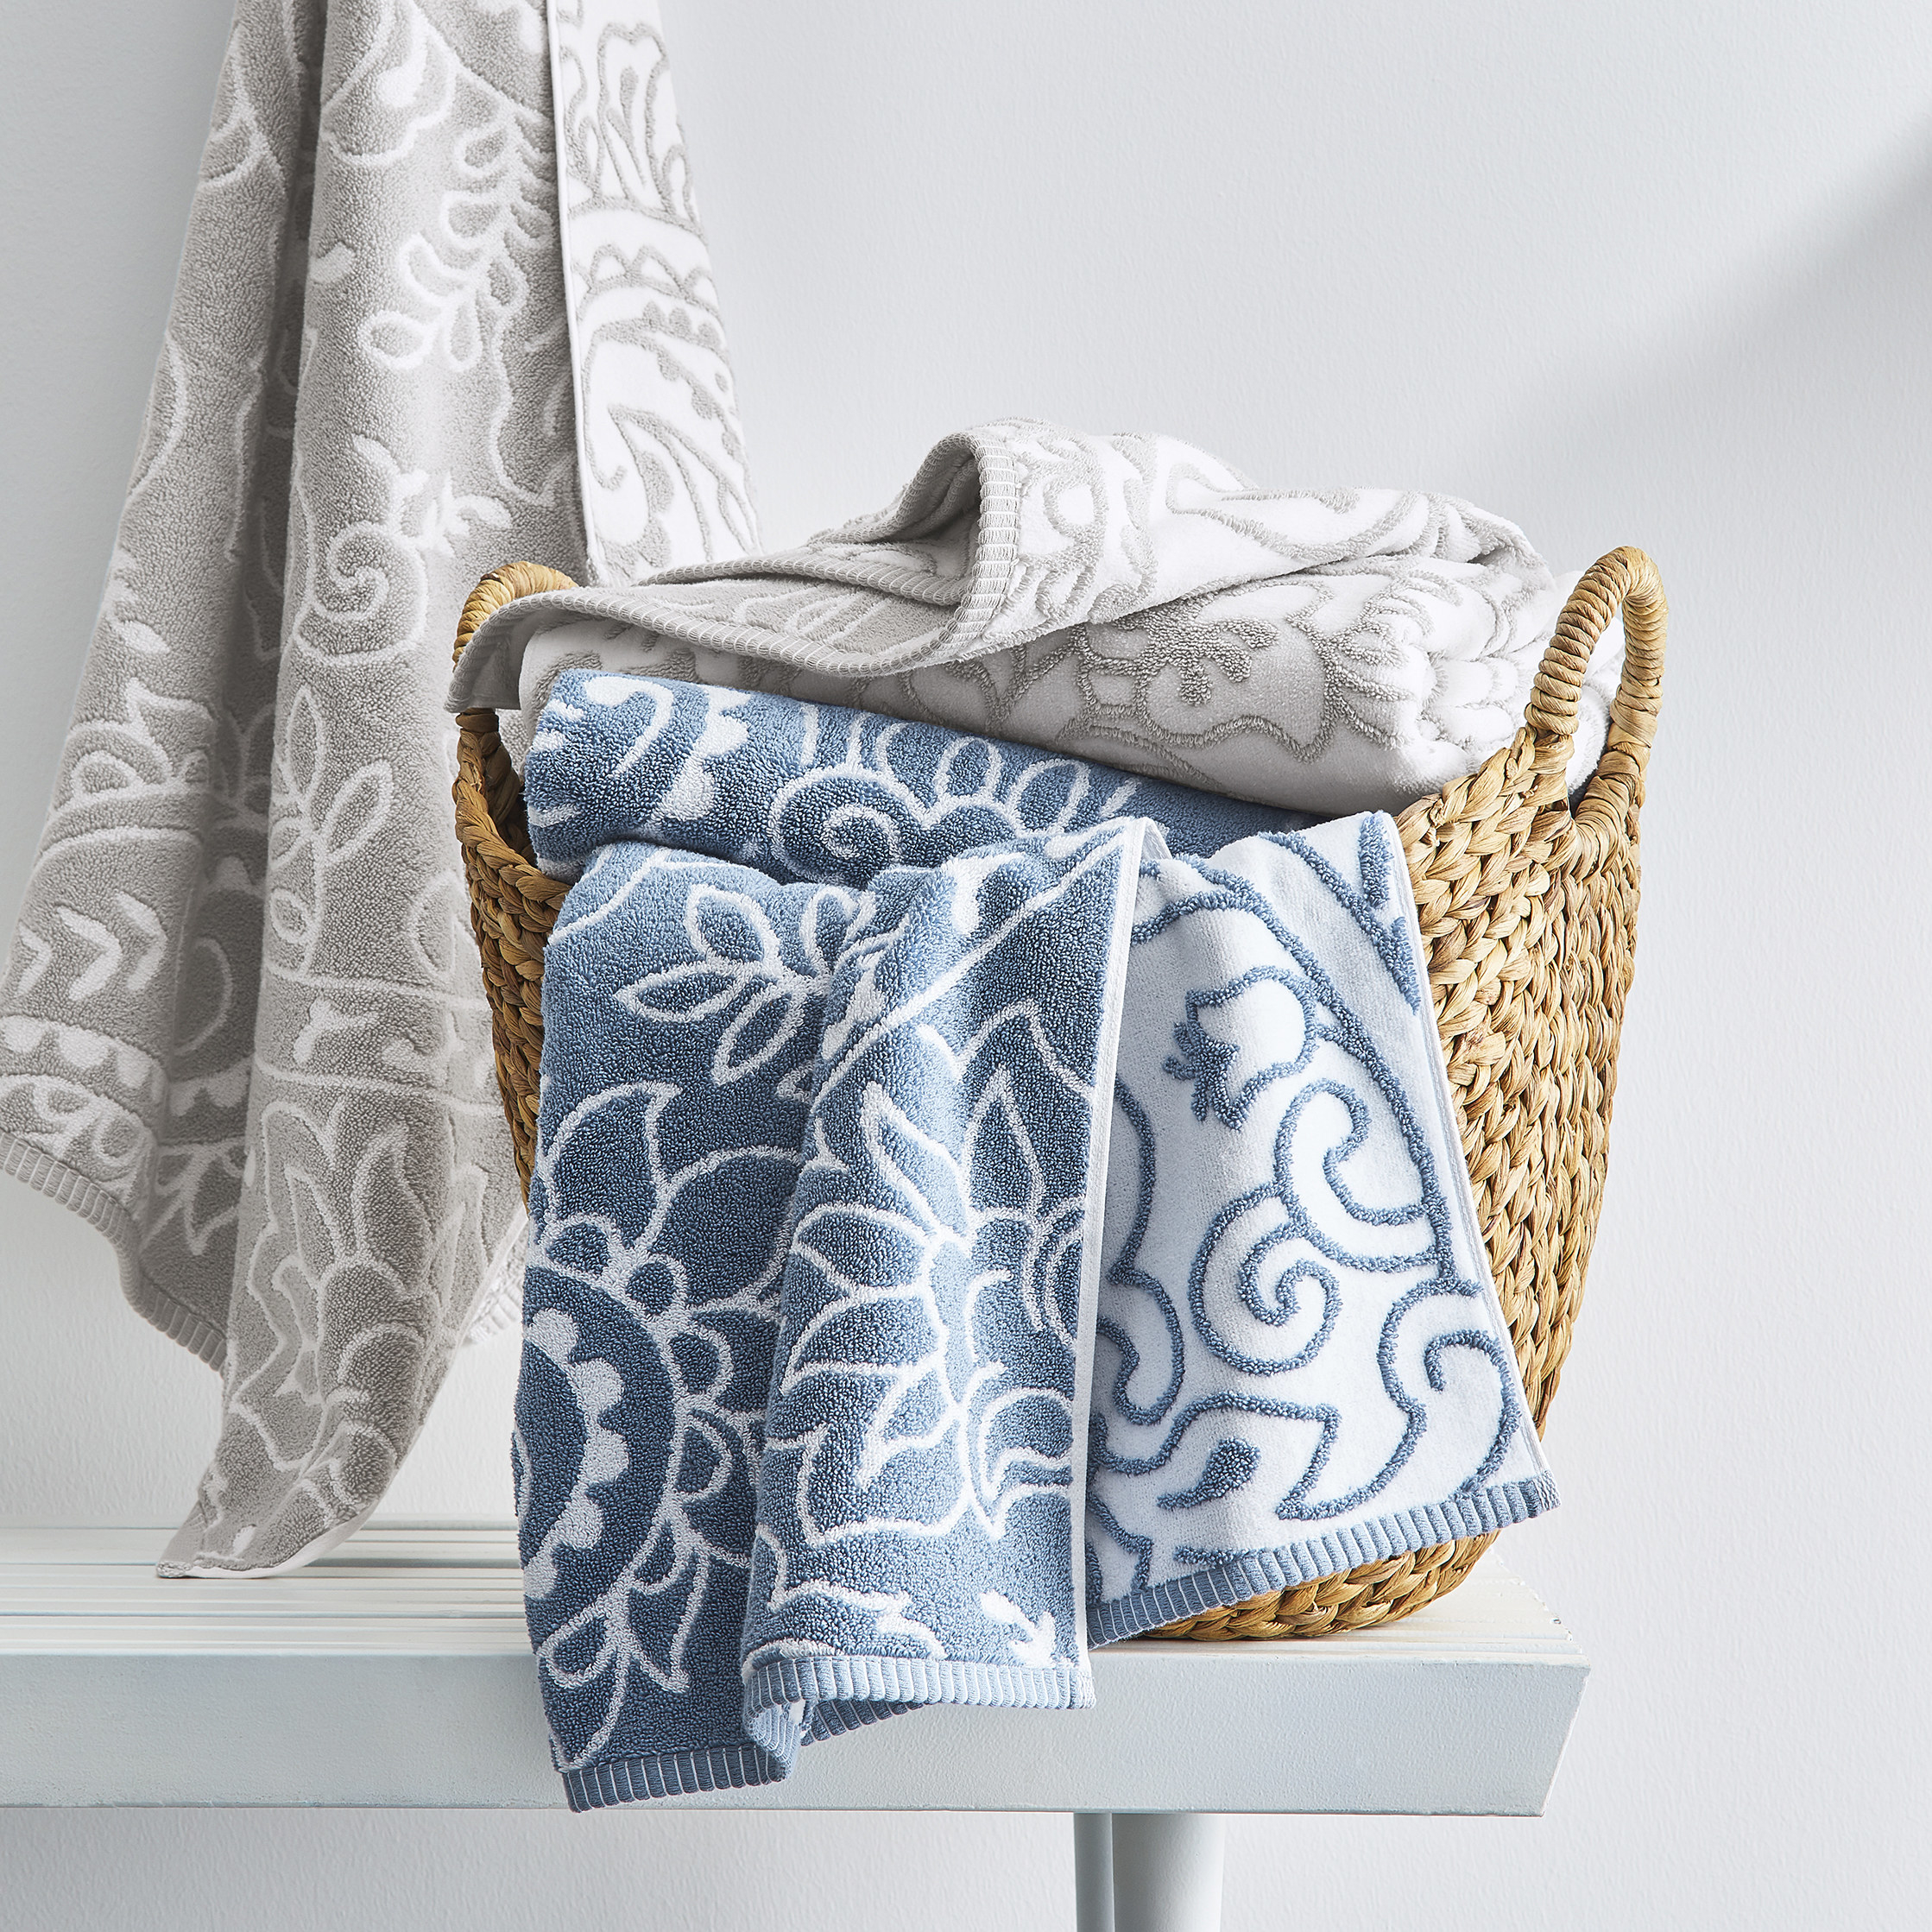 The floral printed towel in blue and gray